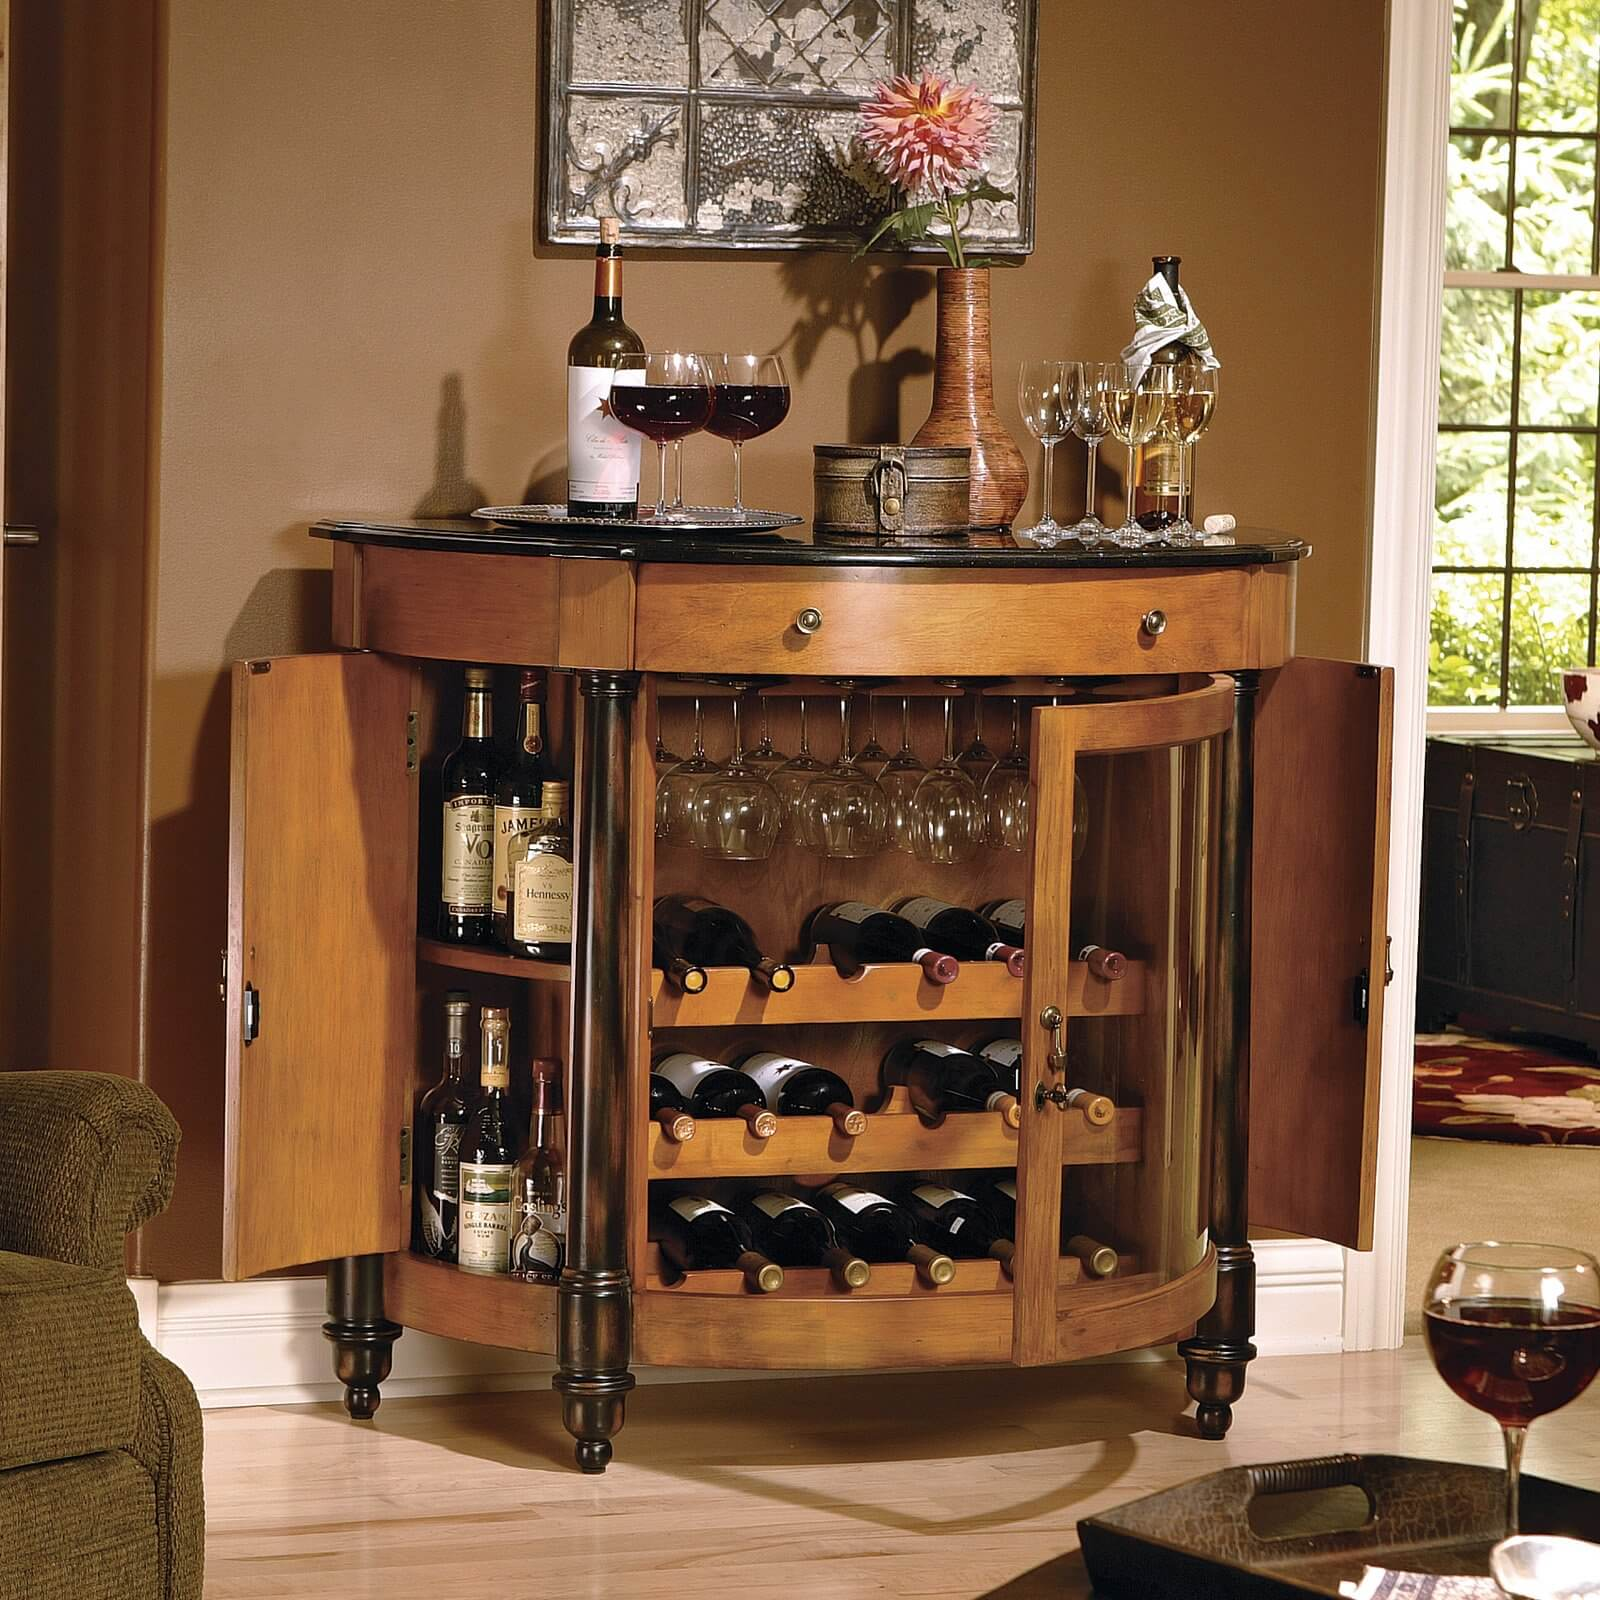 Hereu0027s A Home Bar For Wine Lovers With Itu0027s 18 Bottle Wine Rack. Part 44